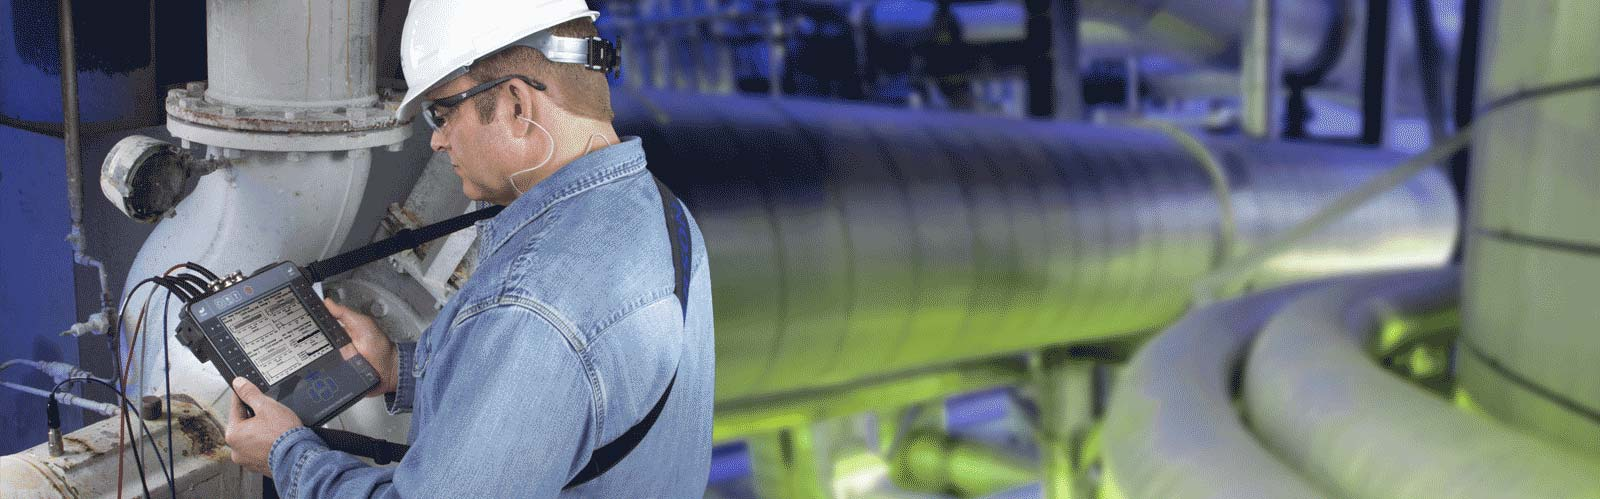 Predictive and proactive maintenance services - the most direct route to a more reliable plant